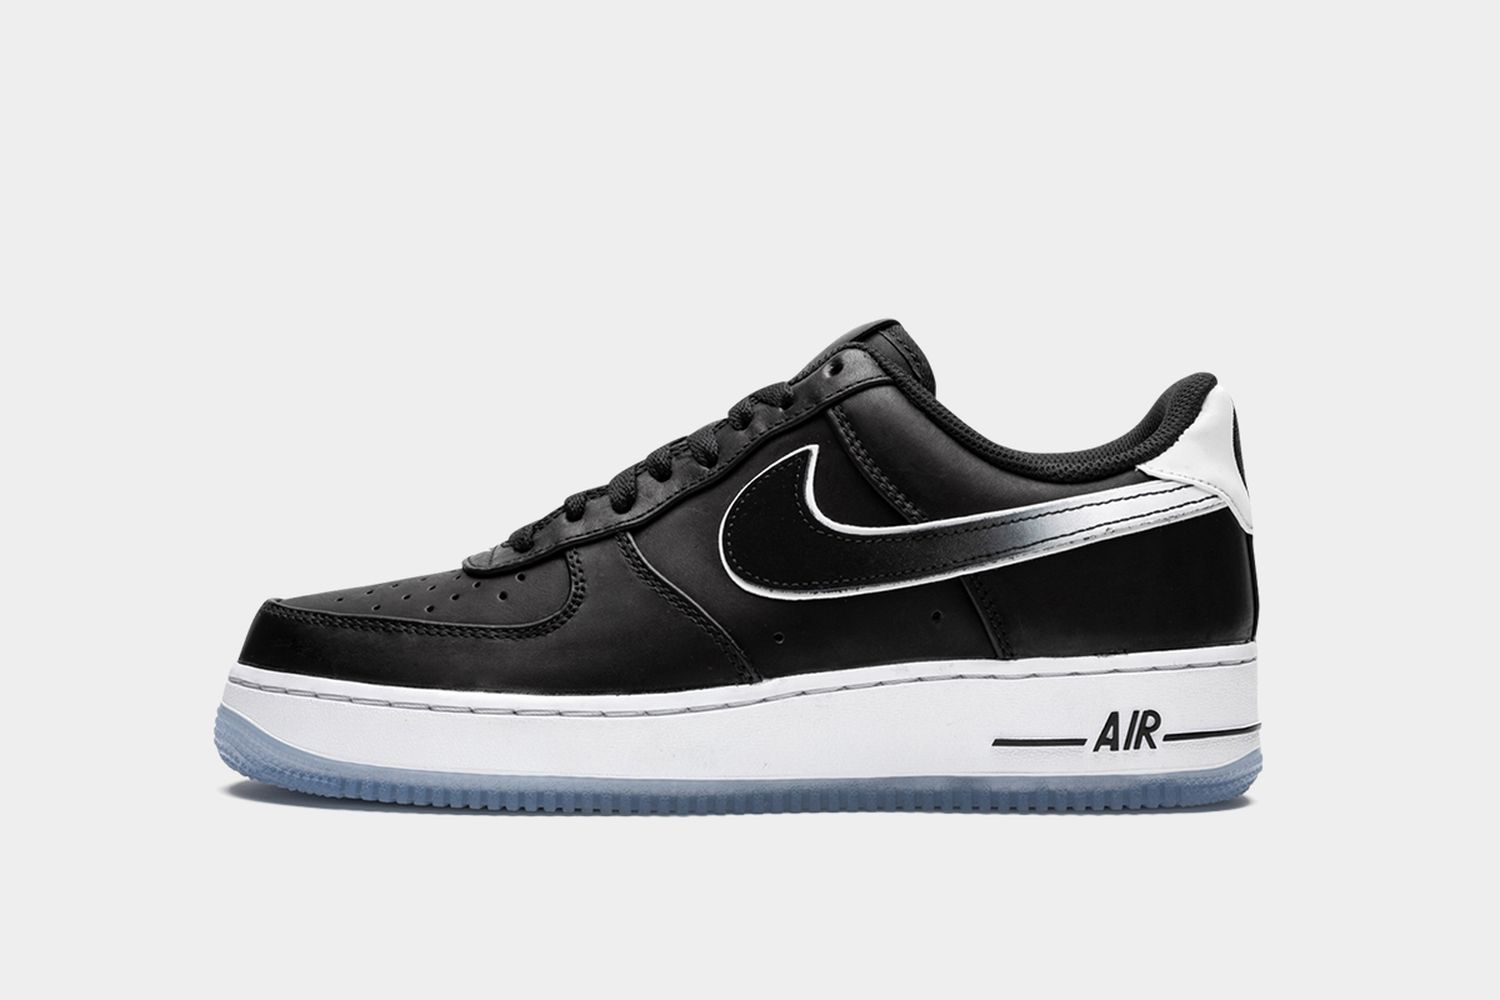 Air Force 1 '07 CK QS